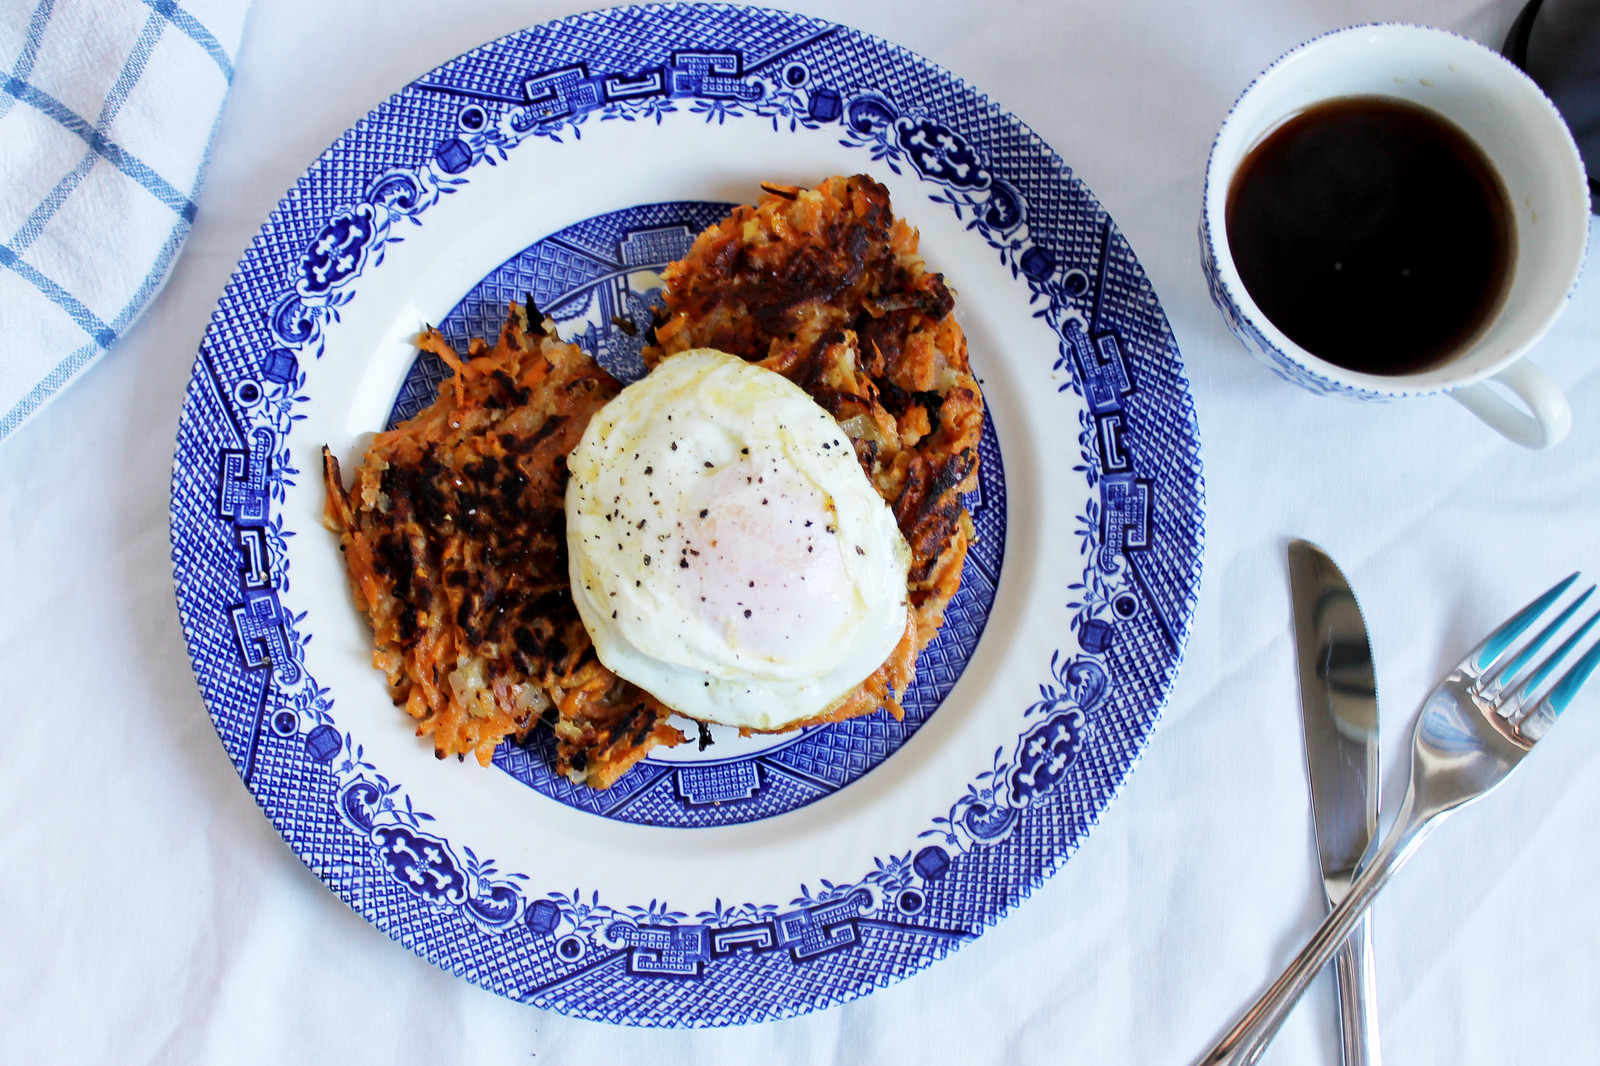 sweet potato and apple hash browns